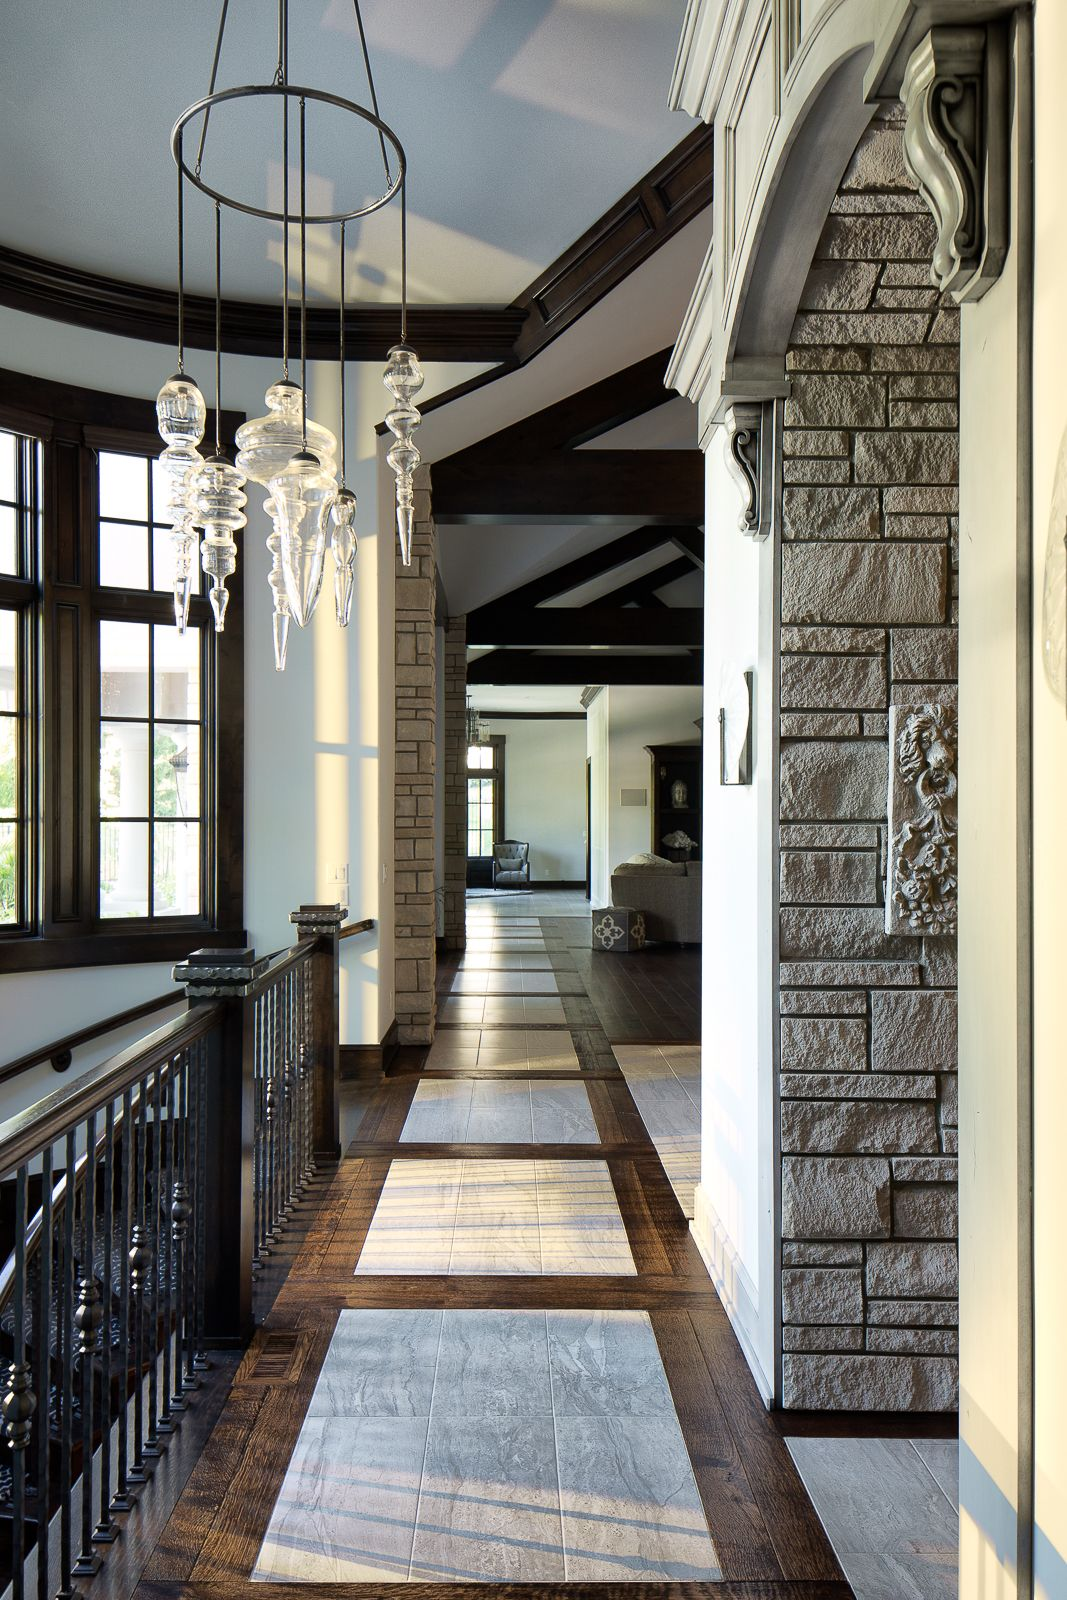 Natural lighting in homes Basement Contemporary Eclectic Custom Home Main Level Hallway An Abundance Of Natural Lighting And High Ceilings Combined With Sophisticated Floor Design And Pinterest Contemporary Eclectic Custom Home Main Level Hallway An Abundance